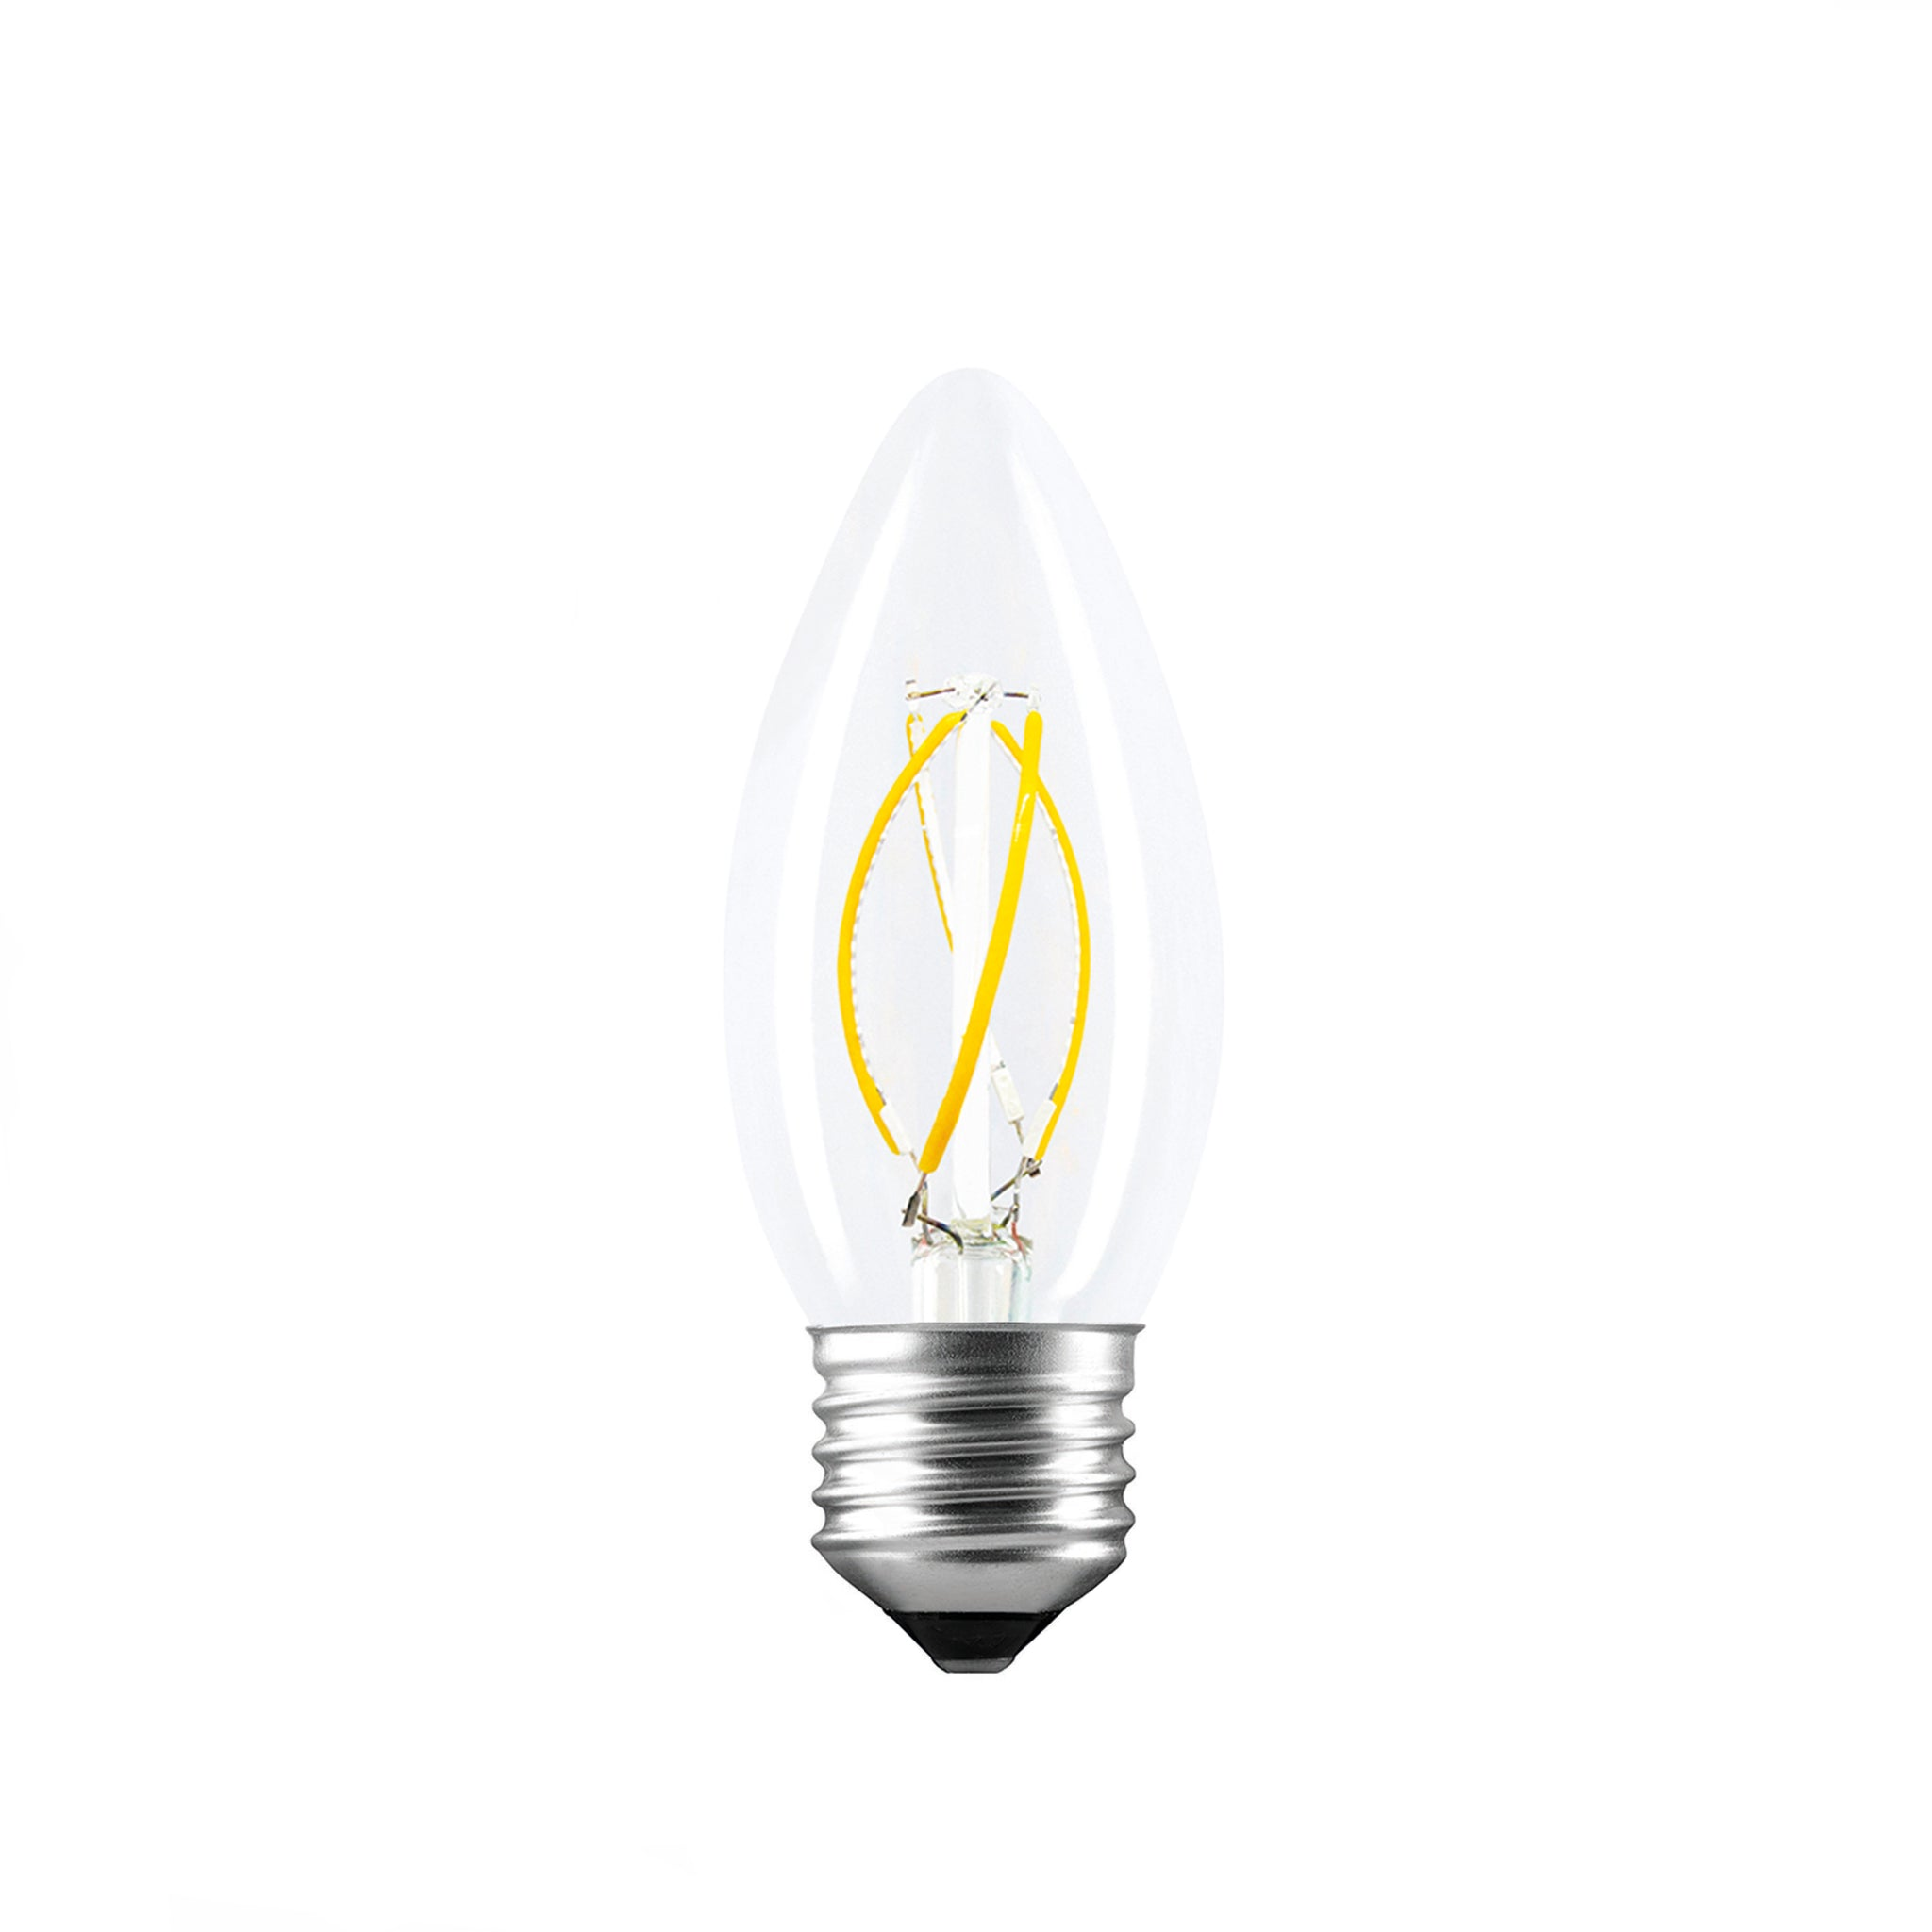 SYMSIS Graphene Candle E27 4W LED Bulb (Non-Dimmable) 4000k